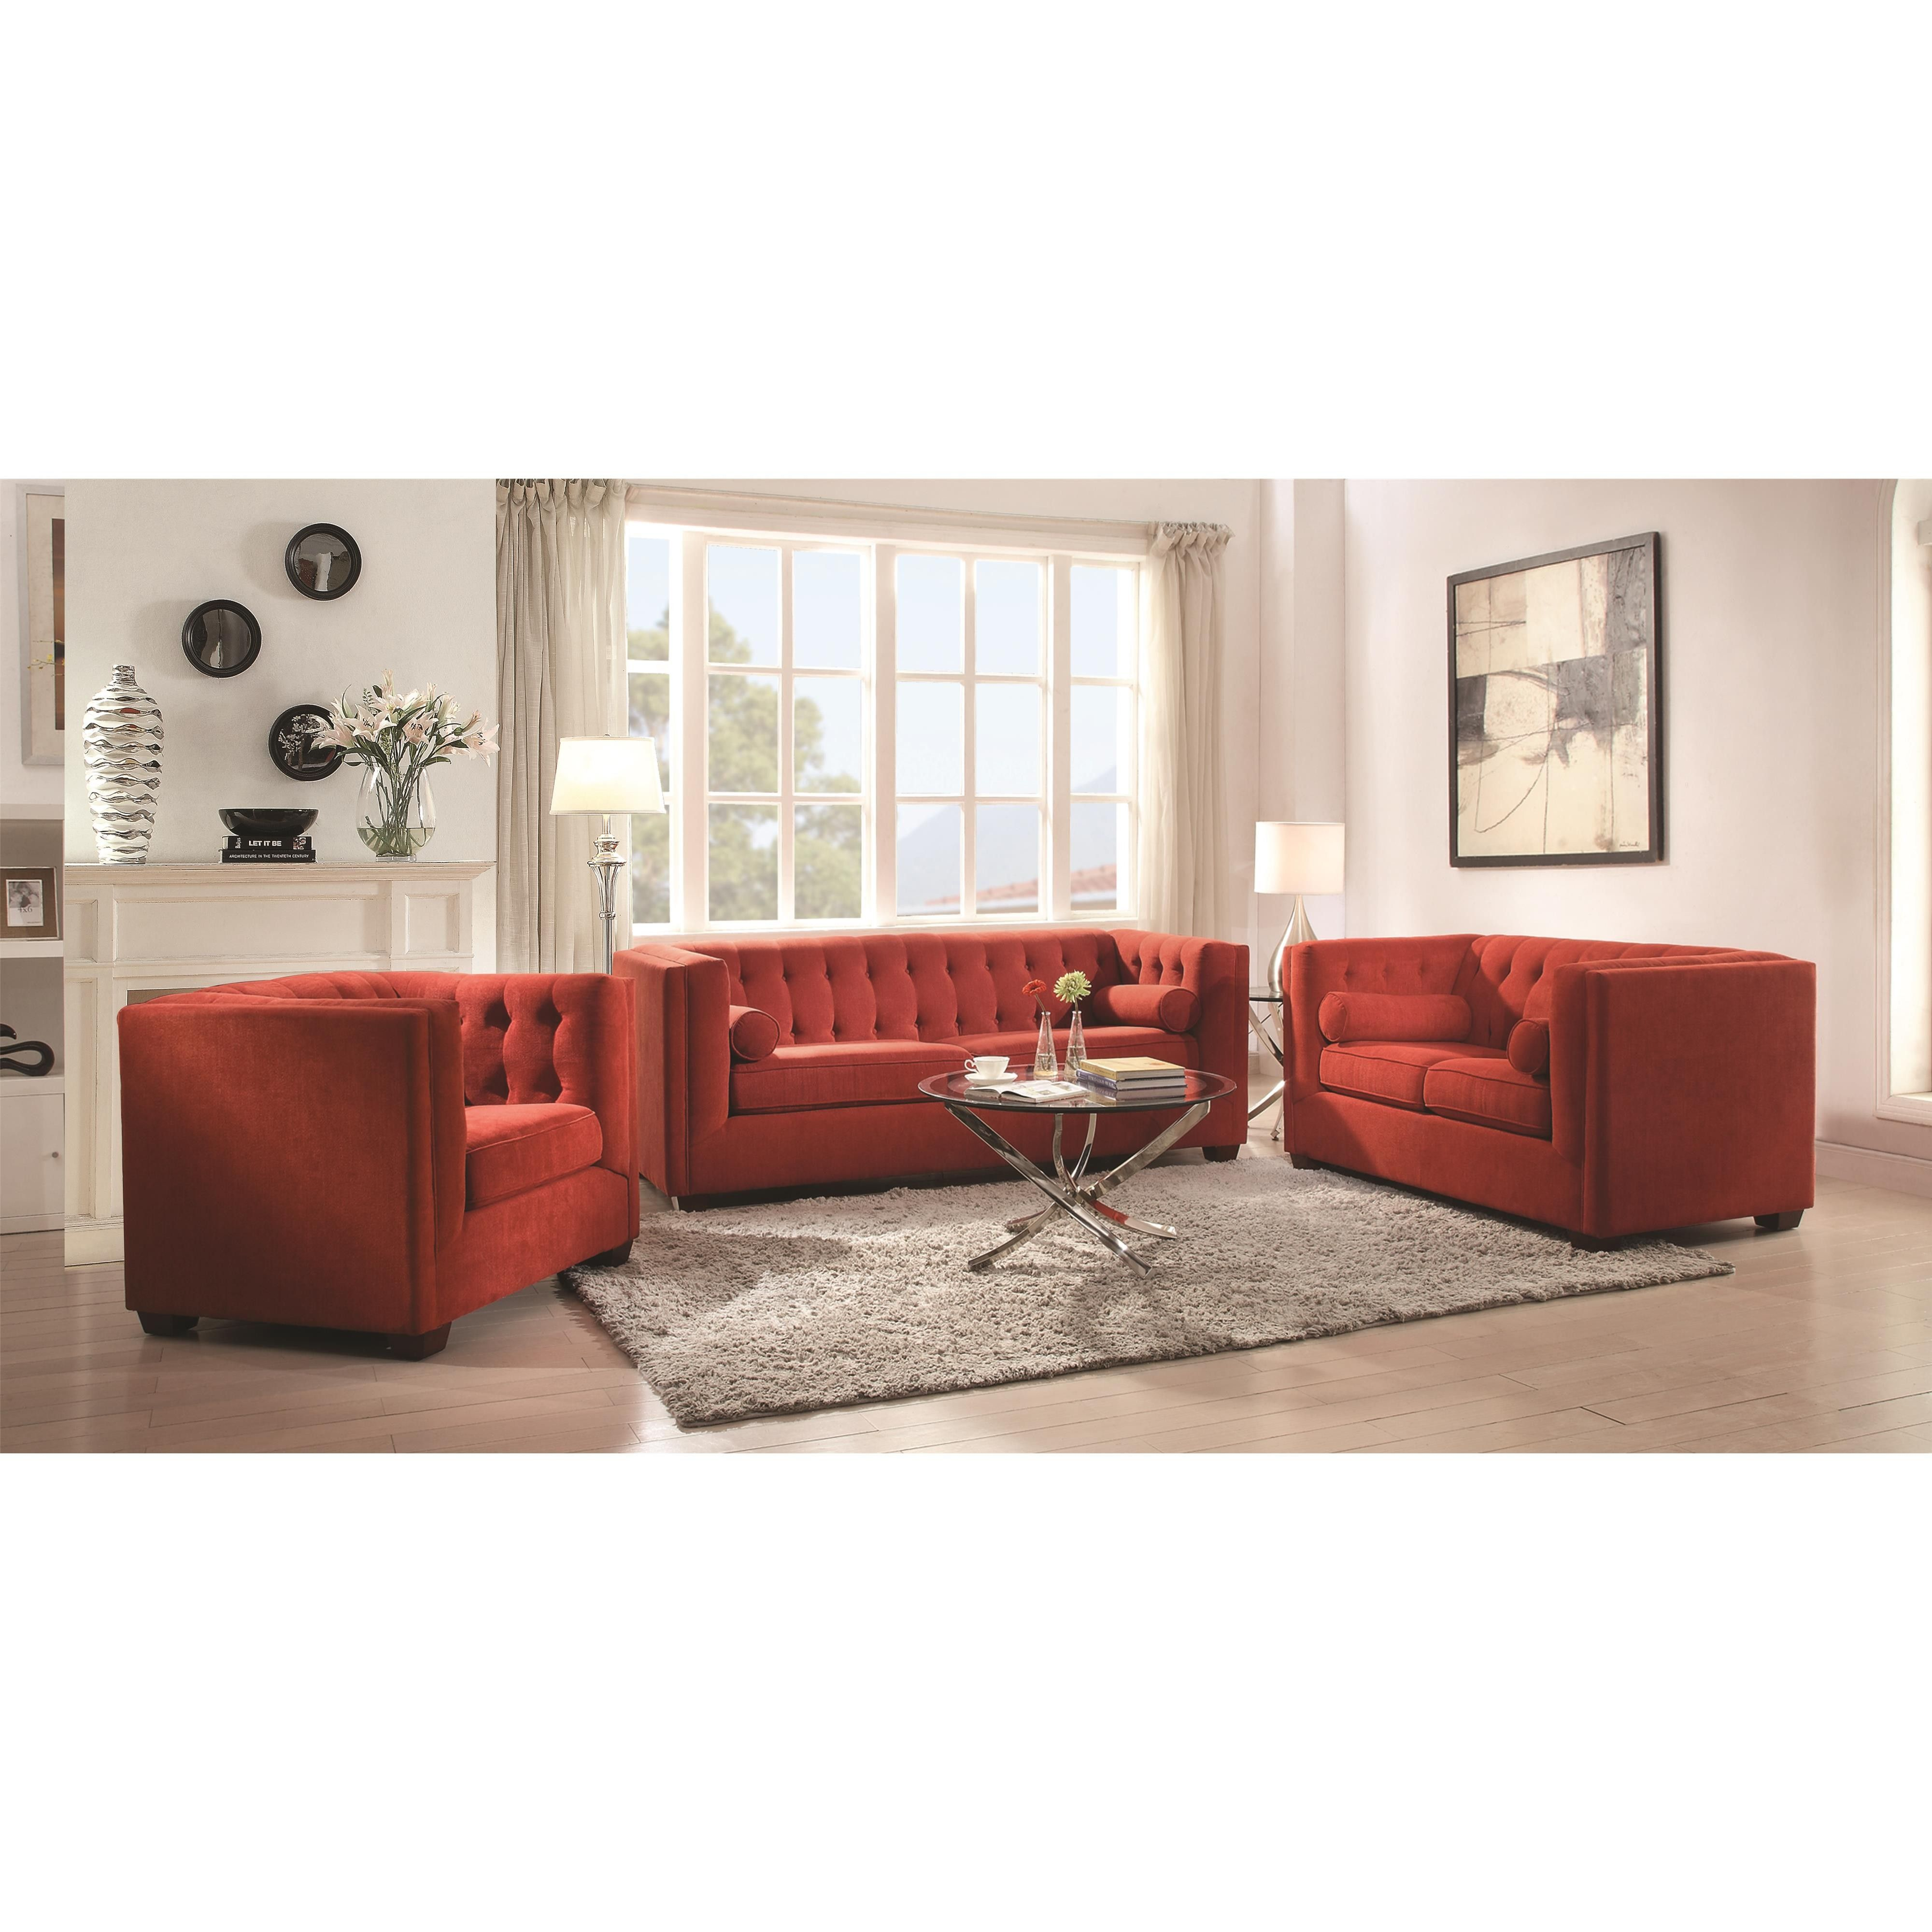 Cairns Collection Red Sofa with Tufted Back and Lumbar Pillows